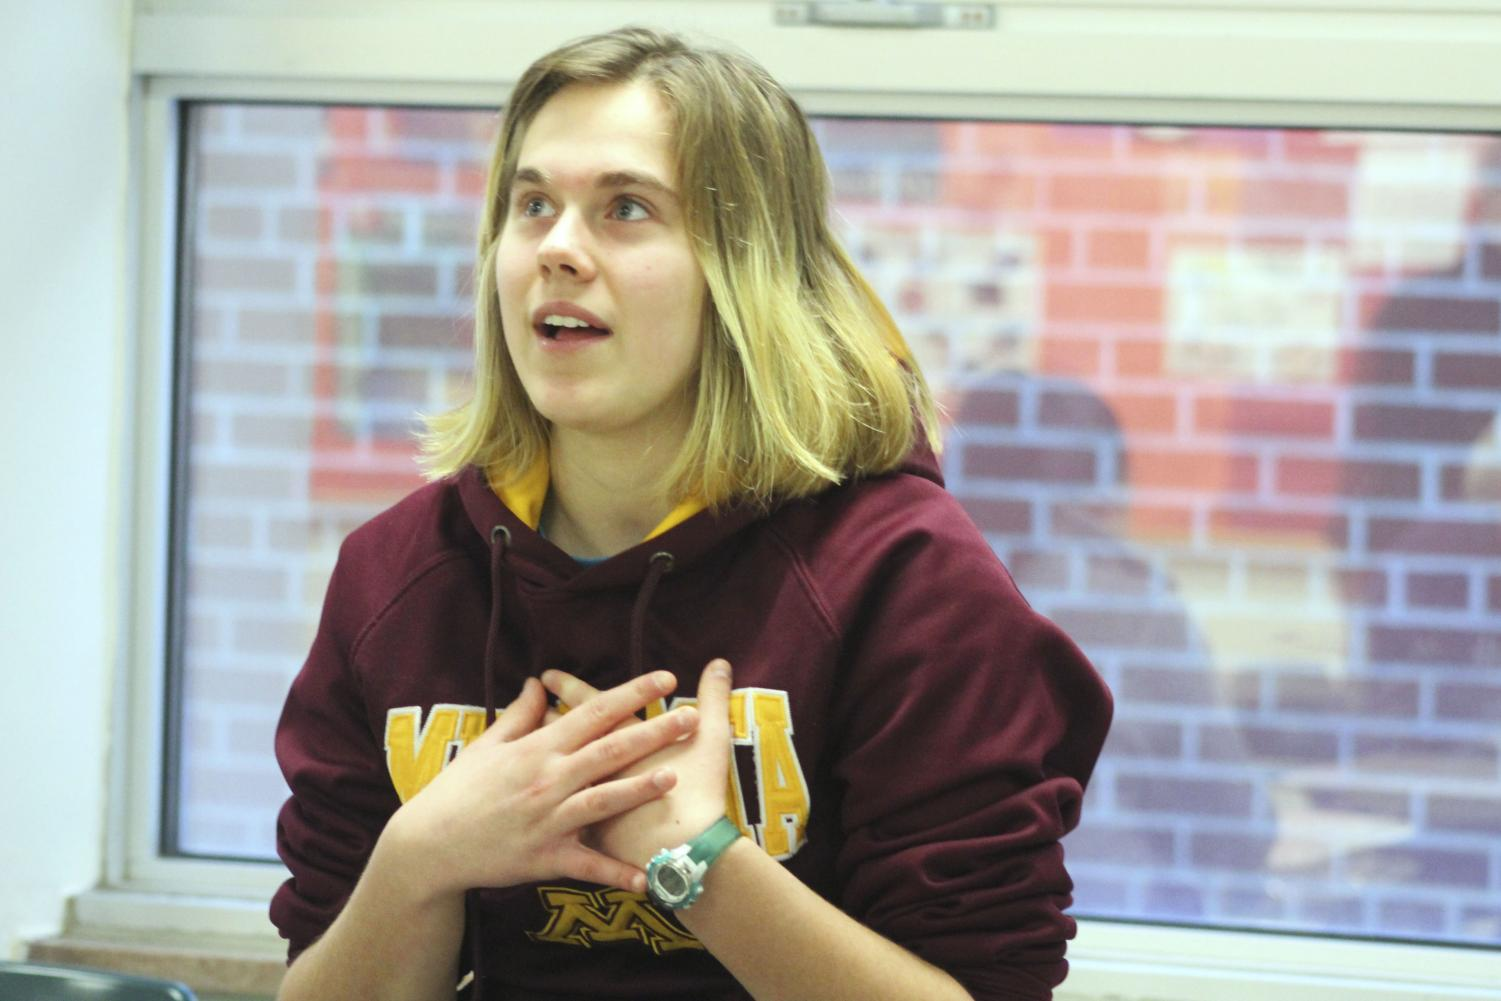 Junior Dayna Krause raises her voice about adding LGBTQ books to the school library during a GSA meeting in room B231.